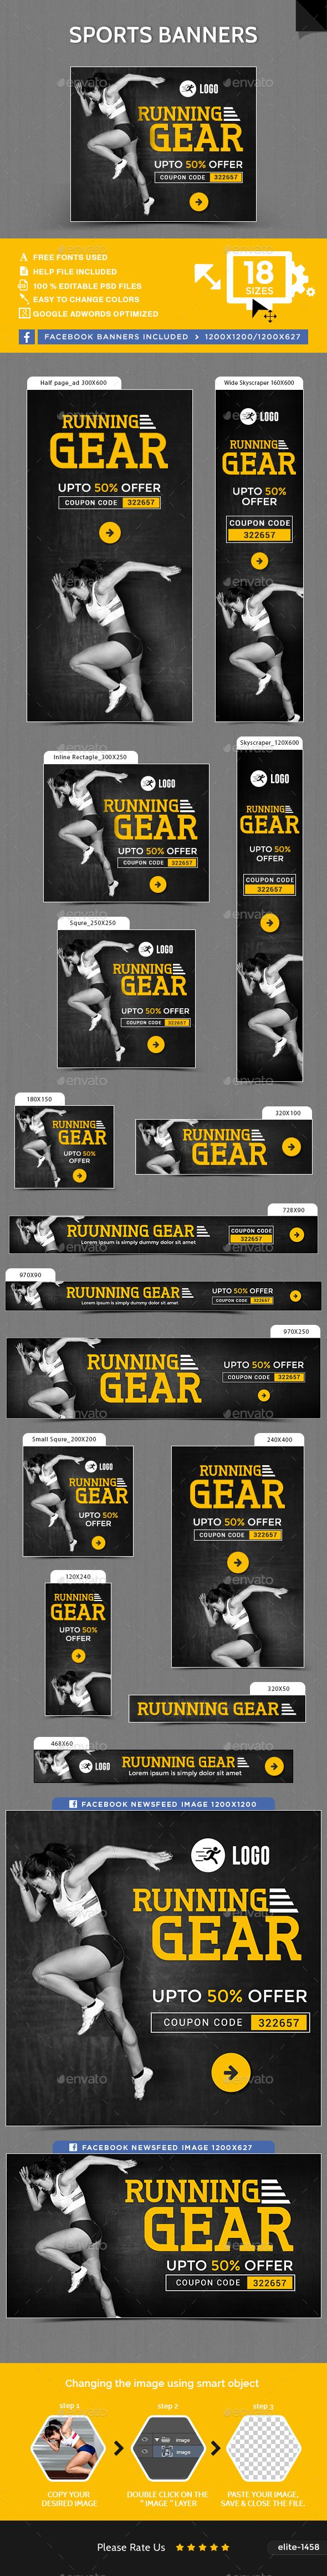 Sports Banners — Photoshop PSD #gif banner #studio • Available here → https://graphicriver.net/item/sports-banners/16048109?ref=pxcr